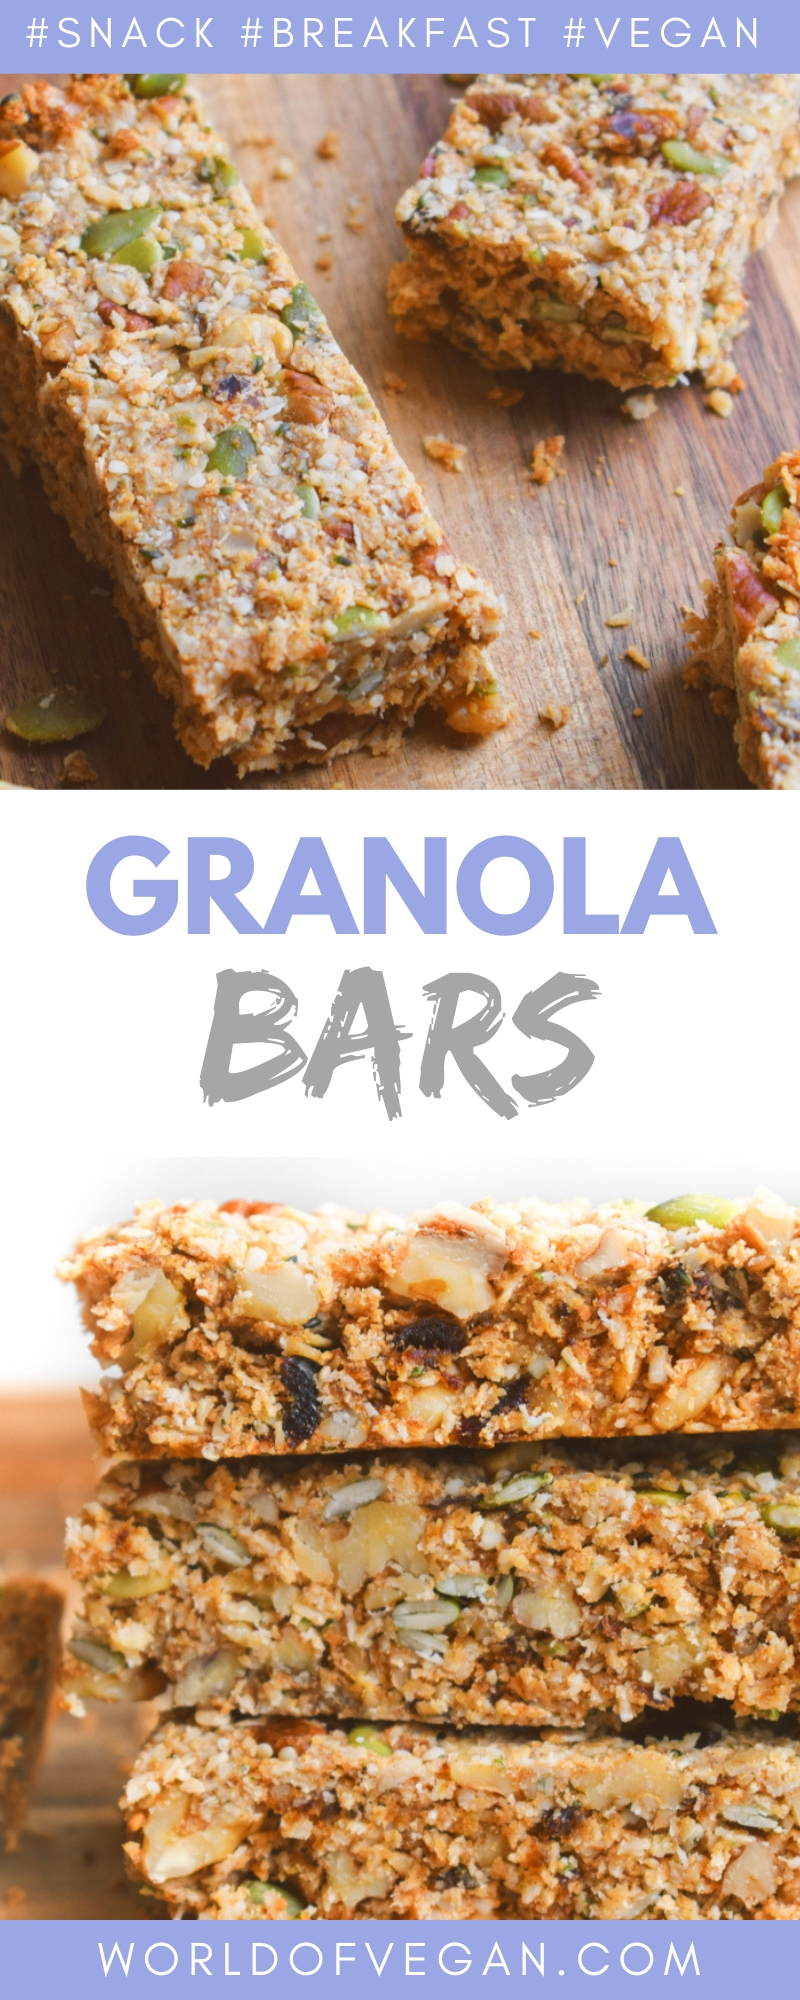 Homemade Granola Bars | Healthy Snack On The Go | World of Vegan | #granola #bars #snack #vegan #breakfast #fall #worldofvegan